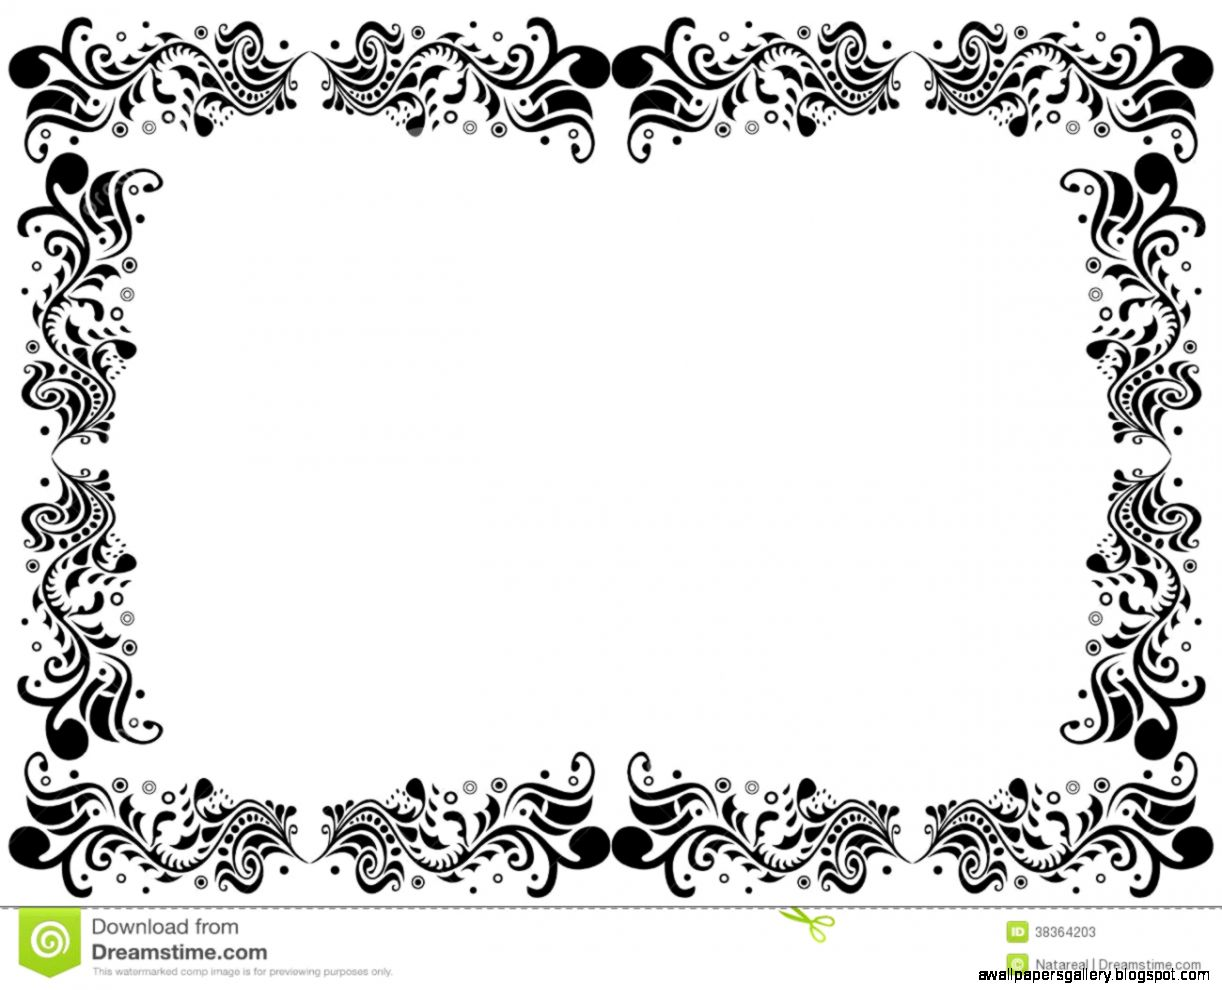 Flower Border Black And White Wallpapers Gallery